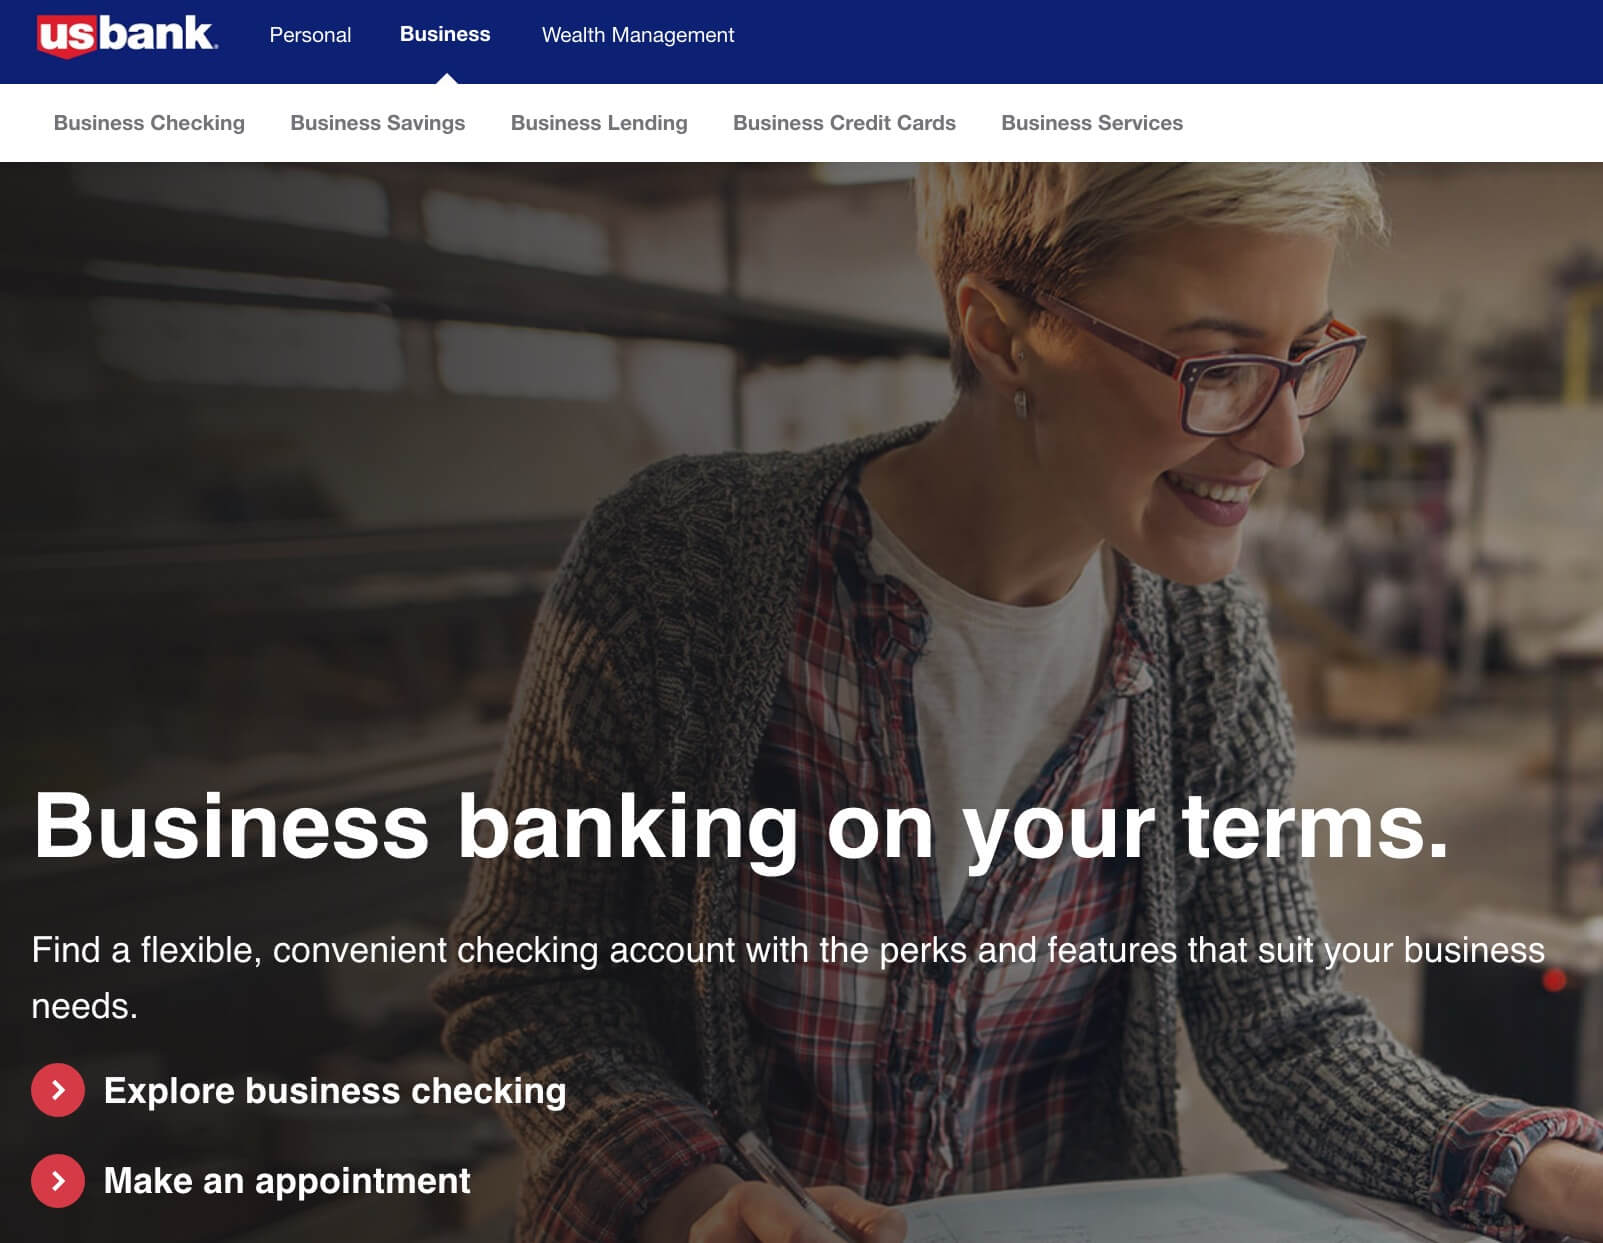 US Bank business banking